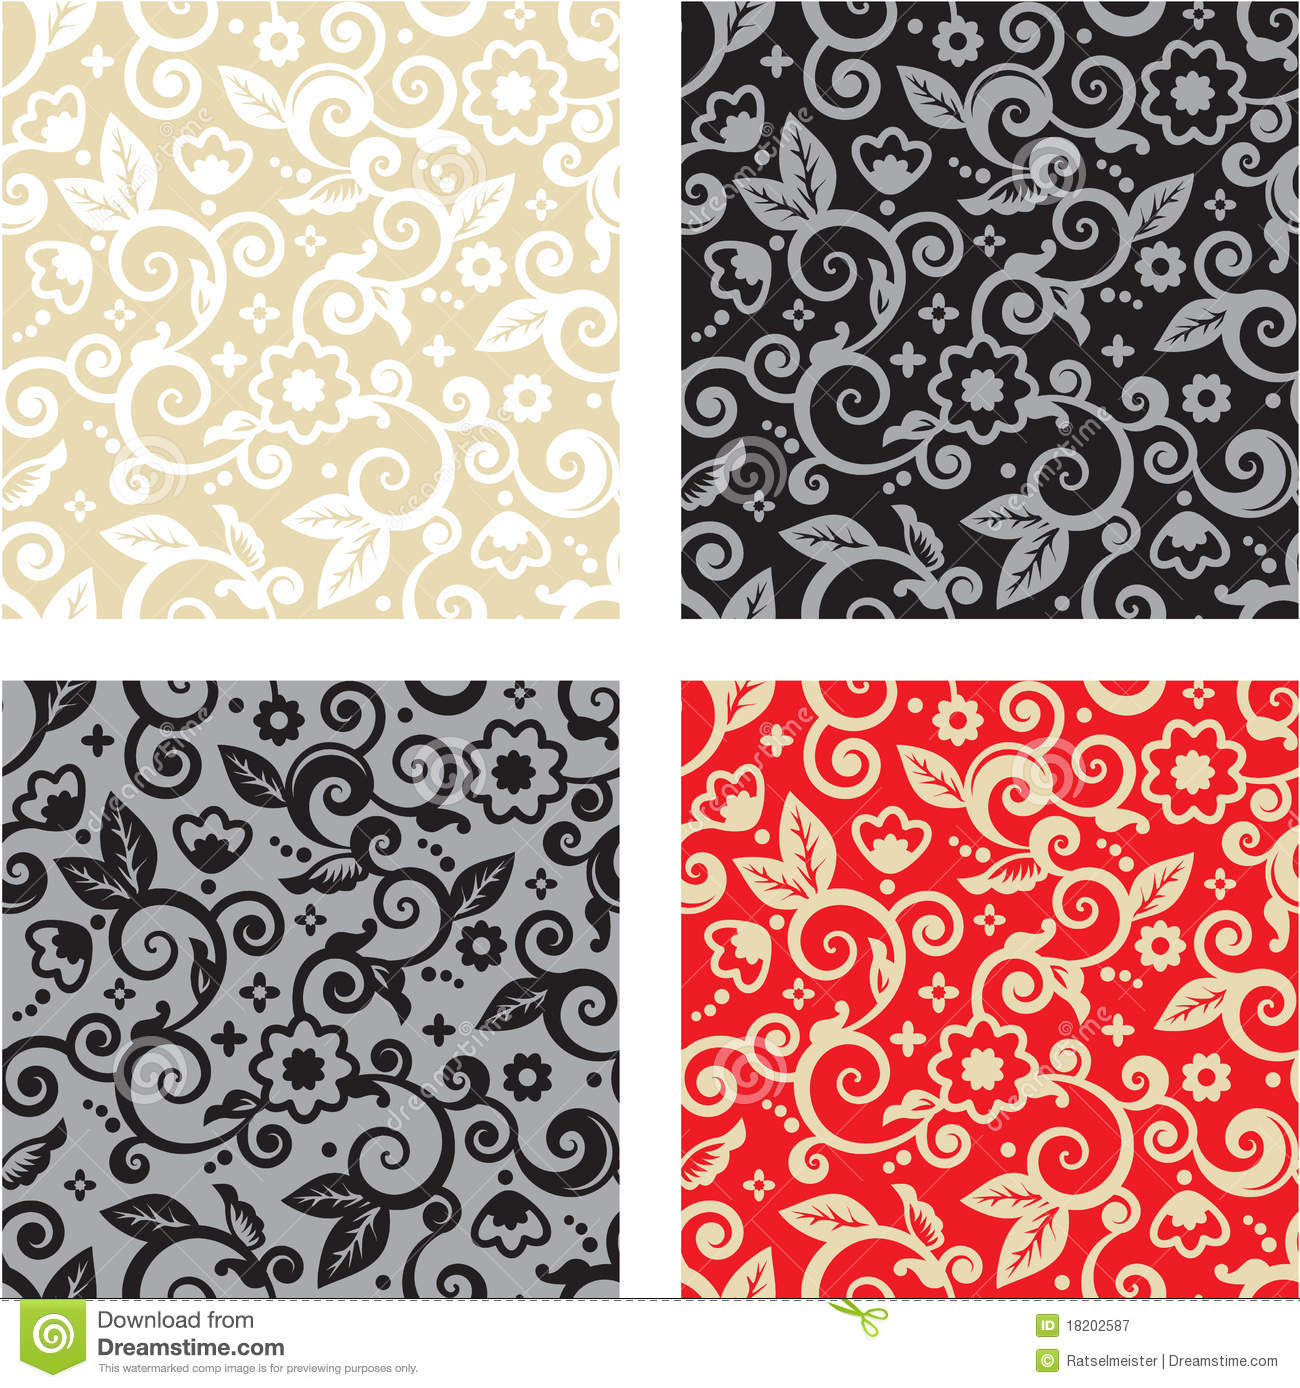 Black Flower And Bud Pattern Royalty Free Stock Photos: Seamless Floral Pattern Backgrounds Stock Vector